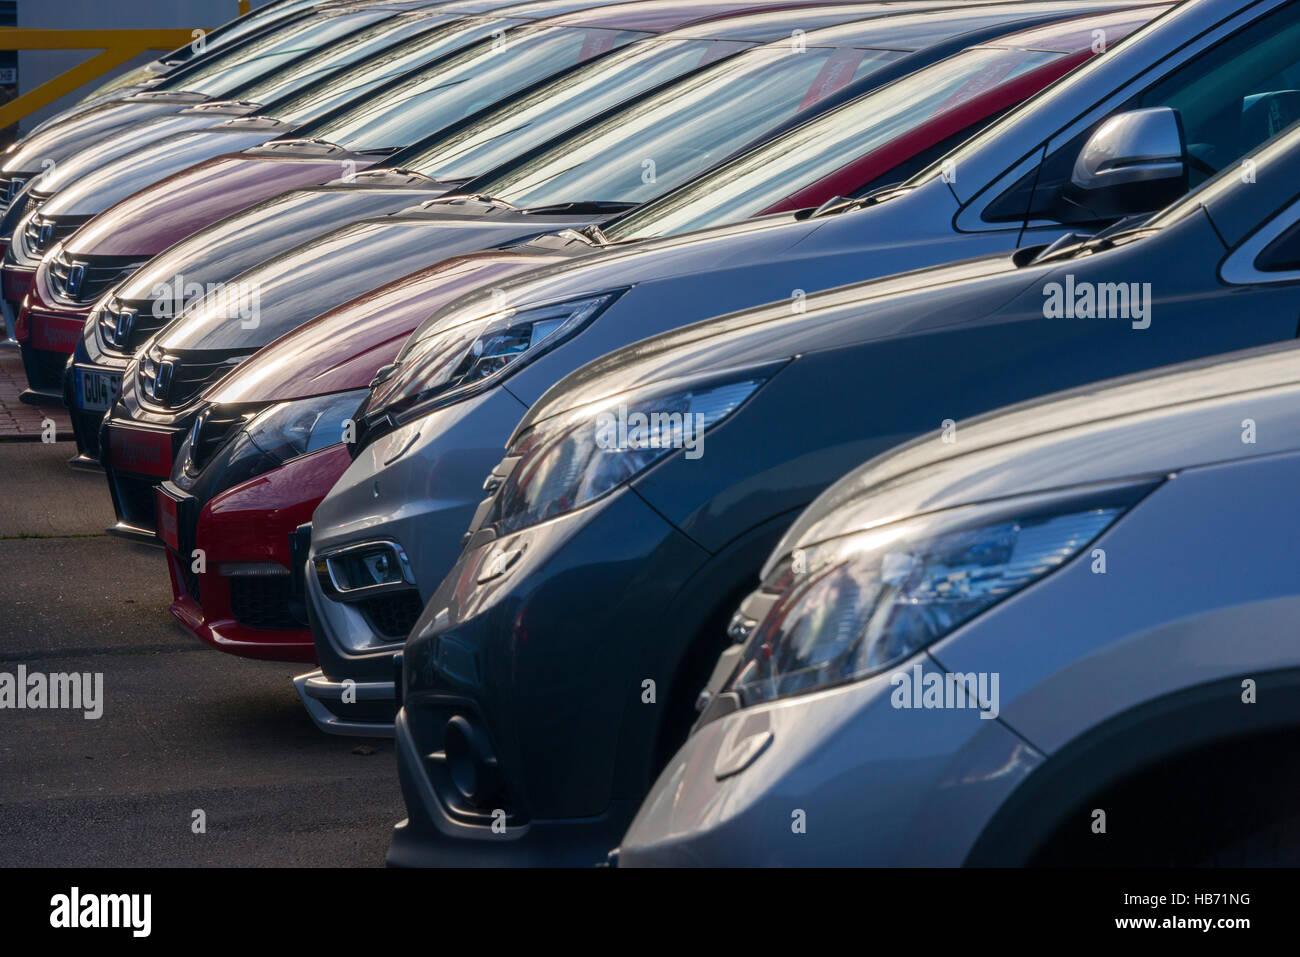 Line of Used Cars For Sale on Showroom Forecourt Stock Photo ...